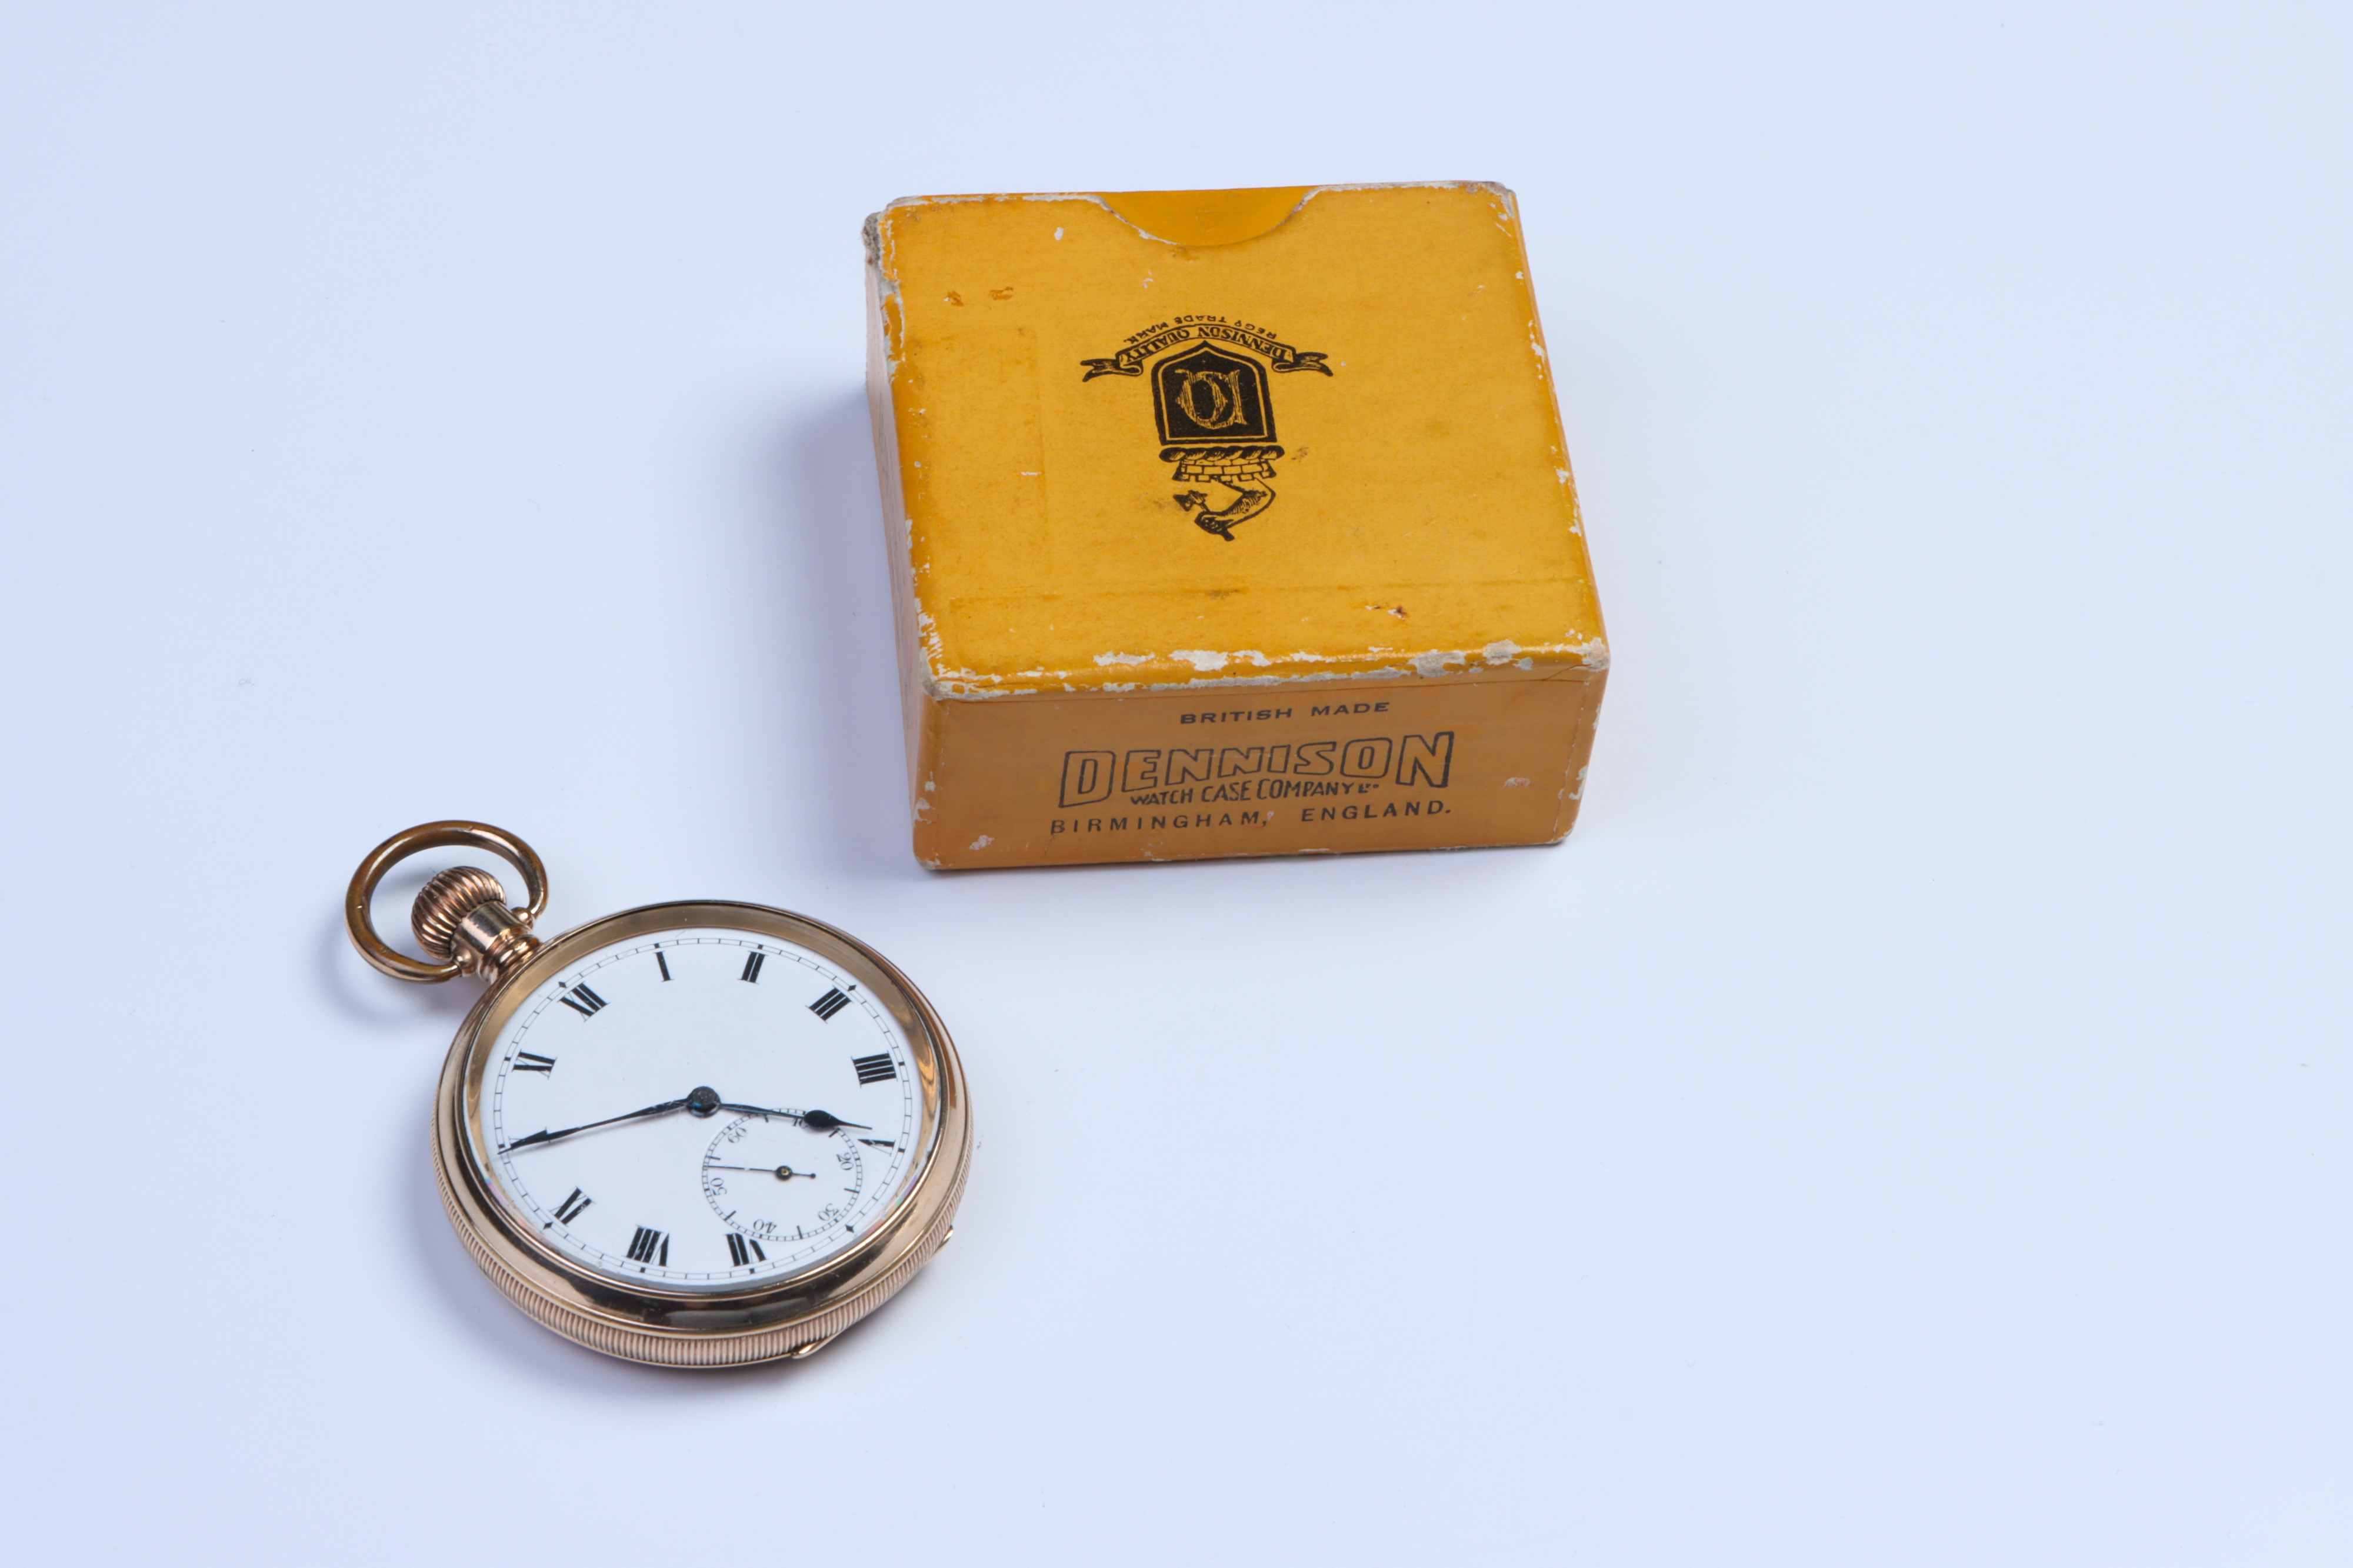 A Gold-Plated Pocket Watch, - Image 2 of 3